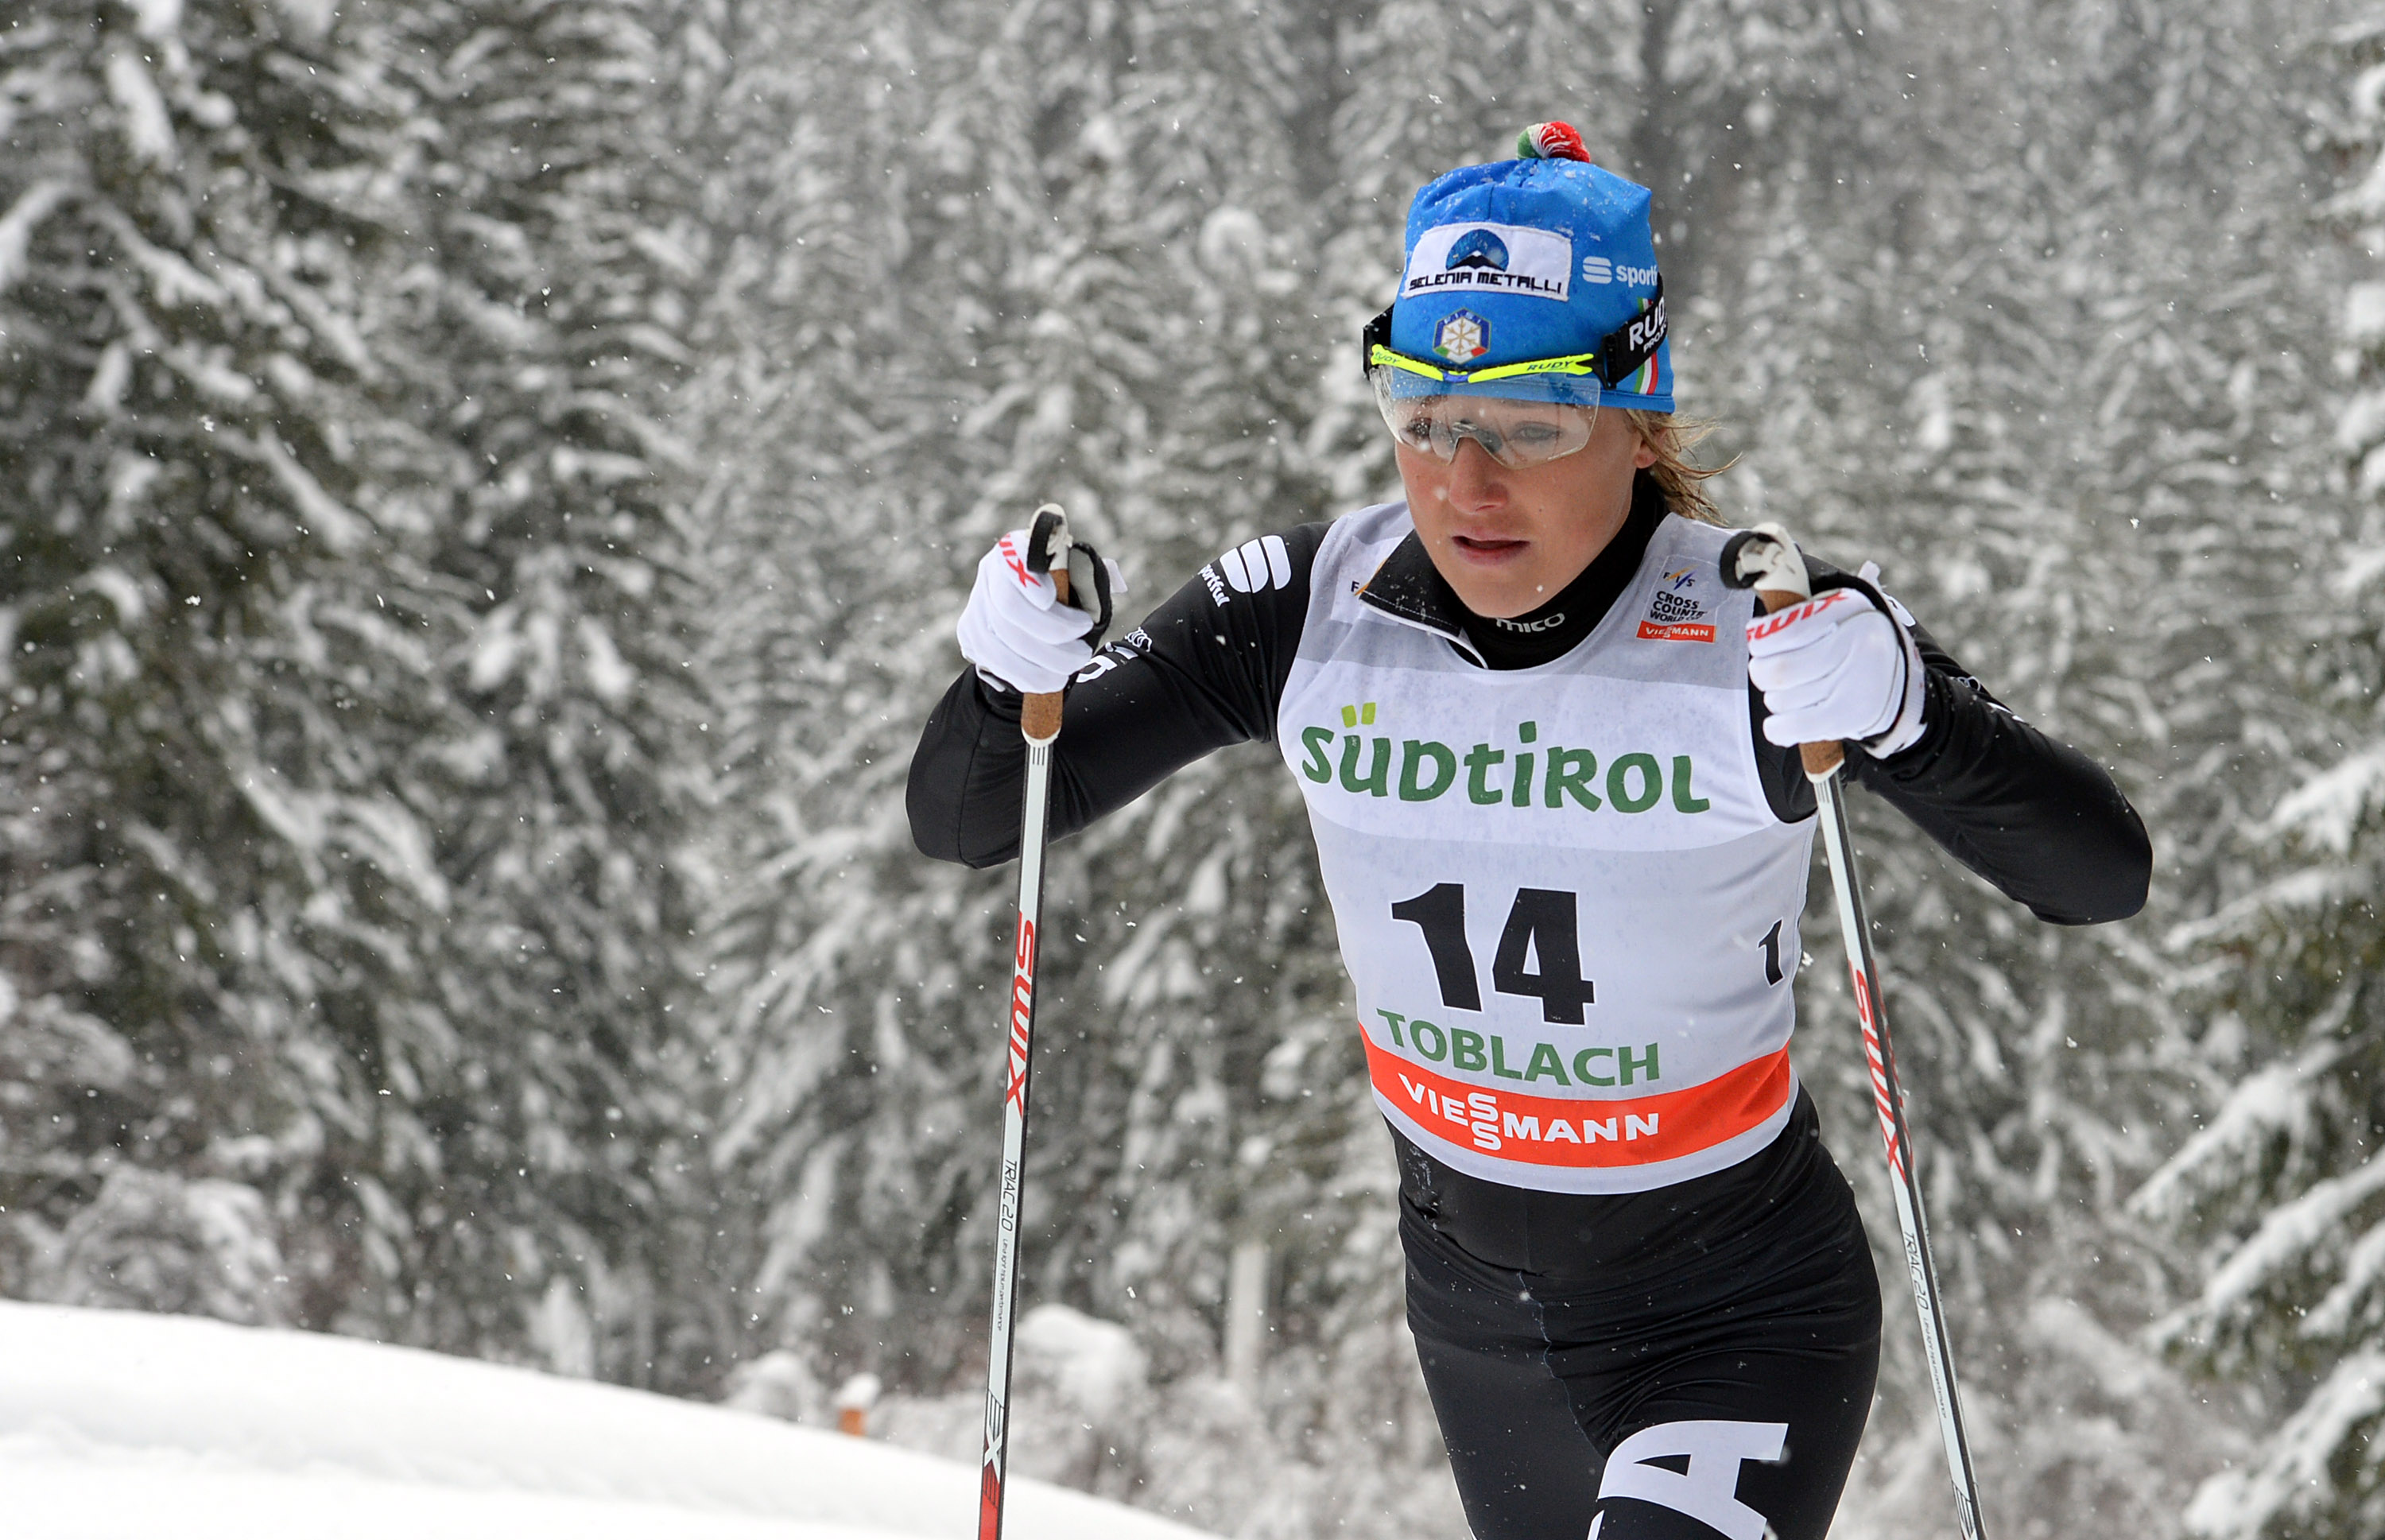 Marina Piller of Italy competes during a cross country ski, women's World Cup, 10-kilometer classic race, in Dobbiaco, Italy, Saturday, Feb.1, 2014